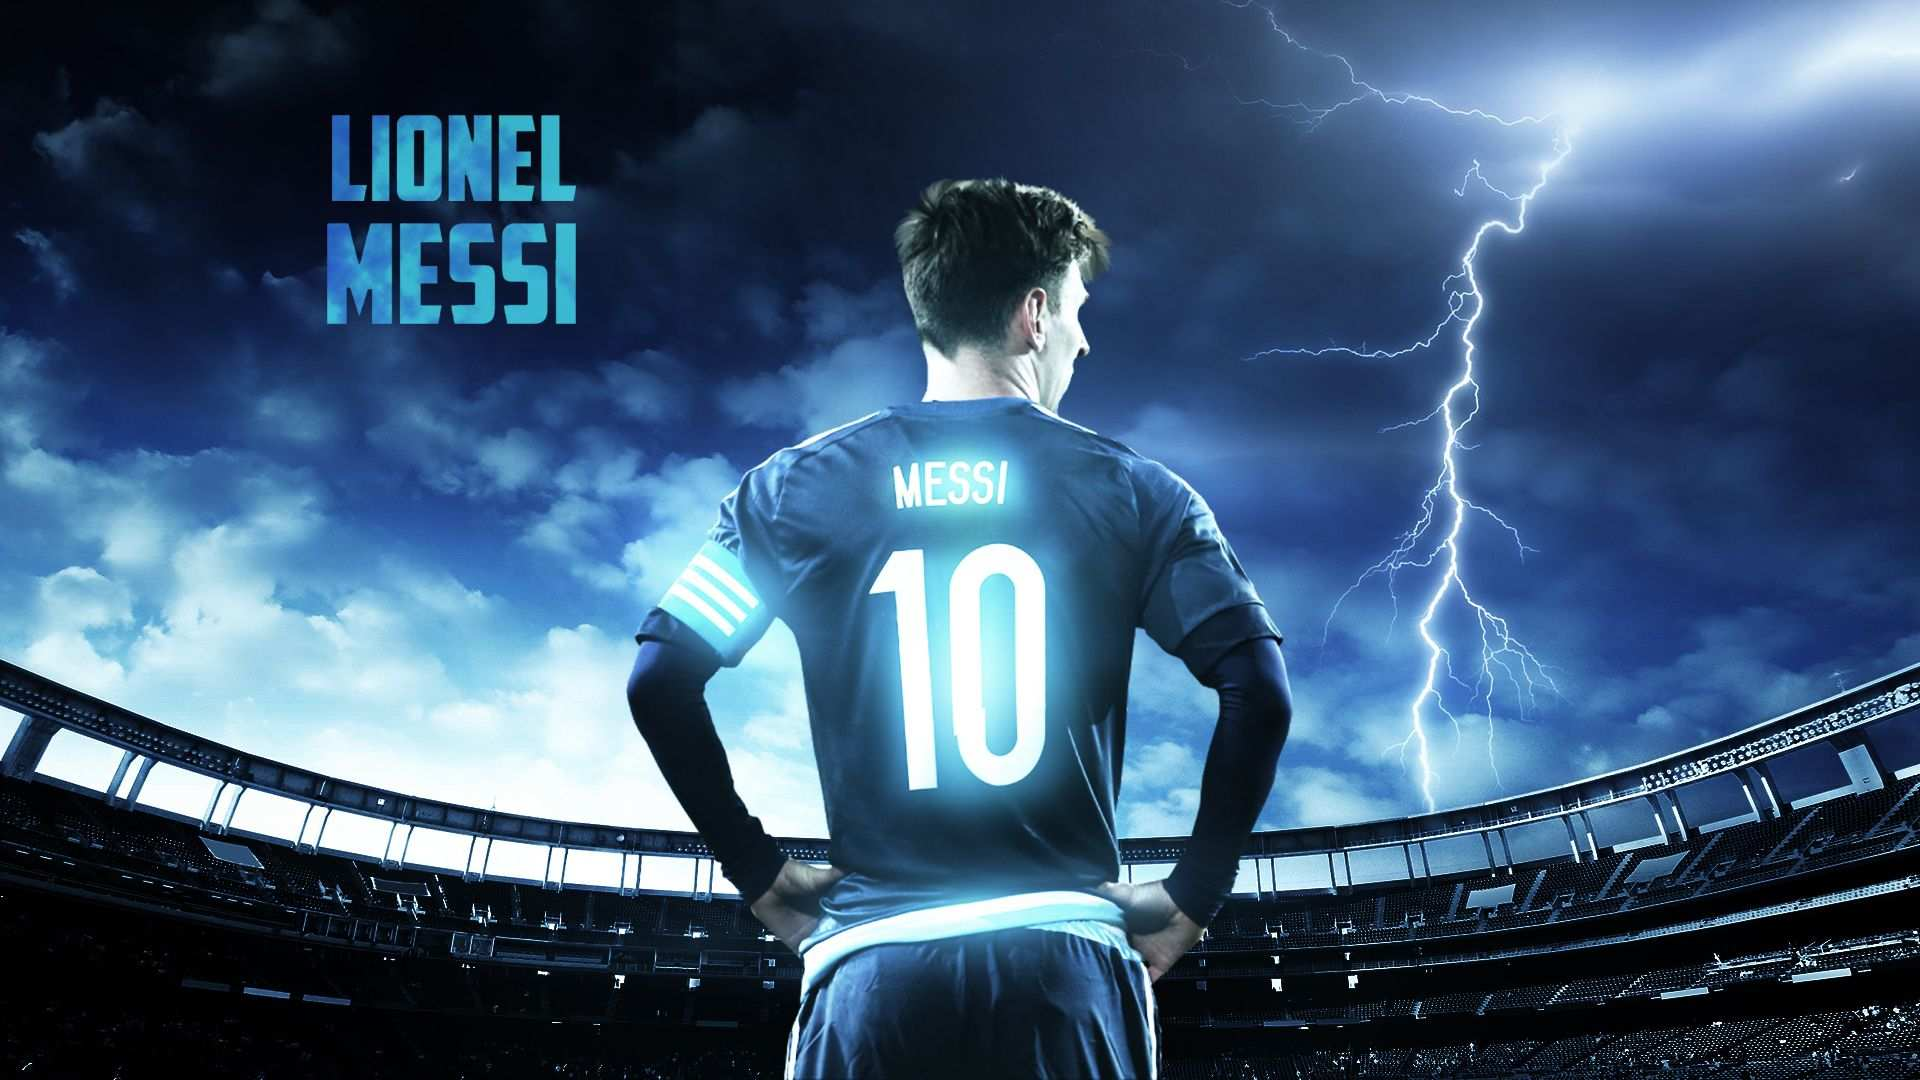 Lionel Messi 2018 FIFA World Cup Wallpapers | Footballwood